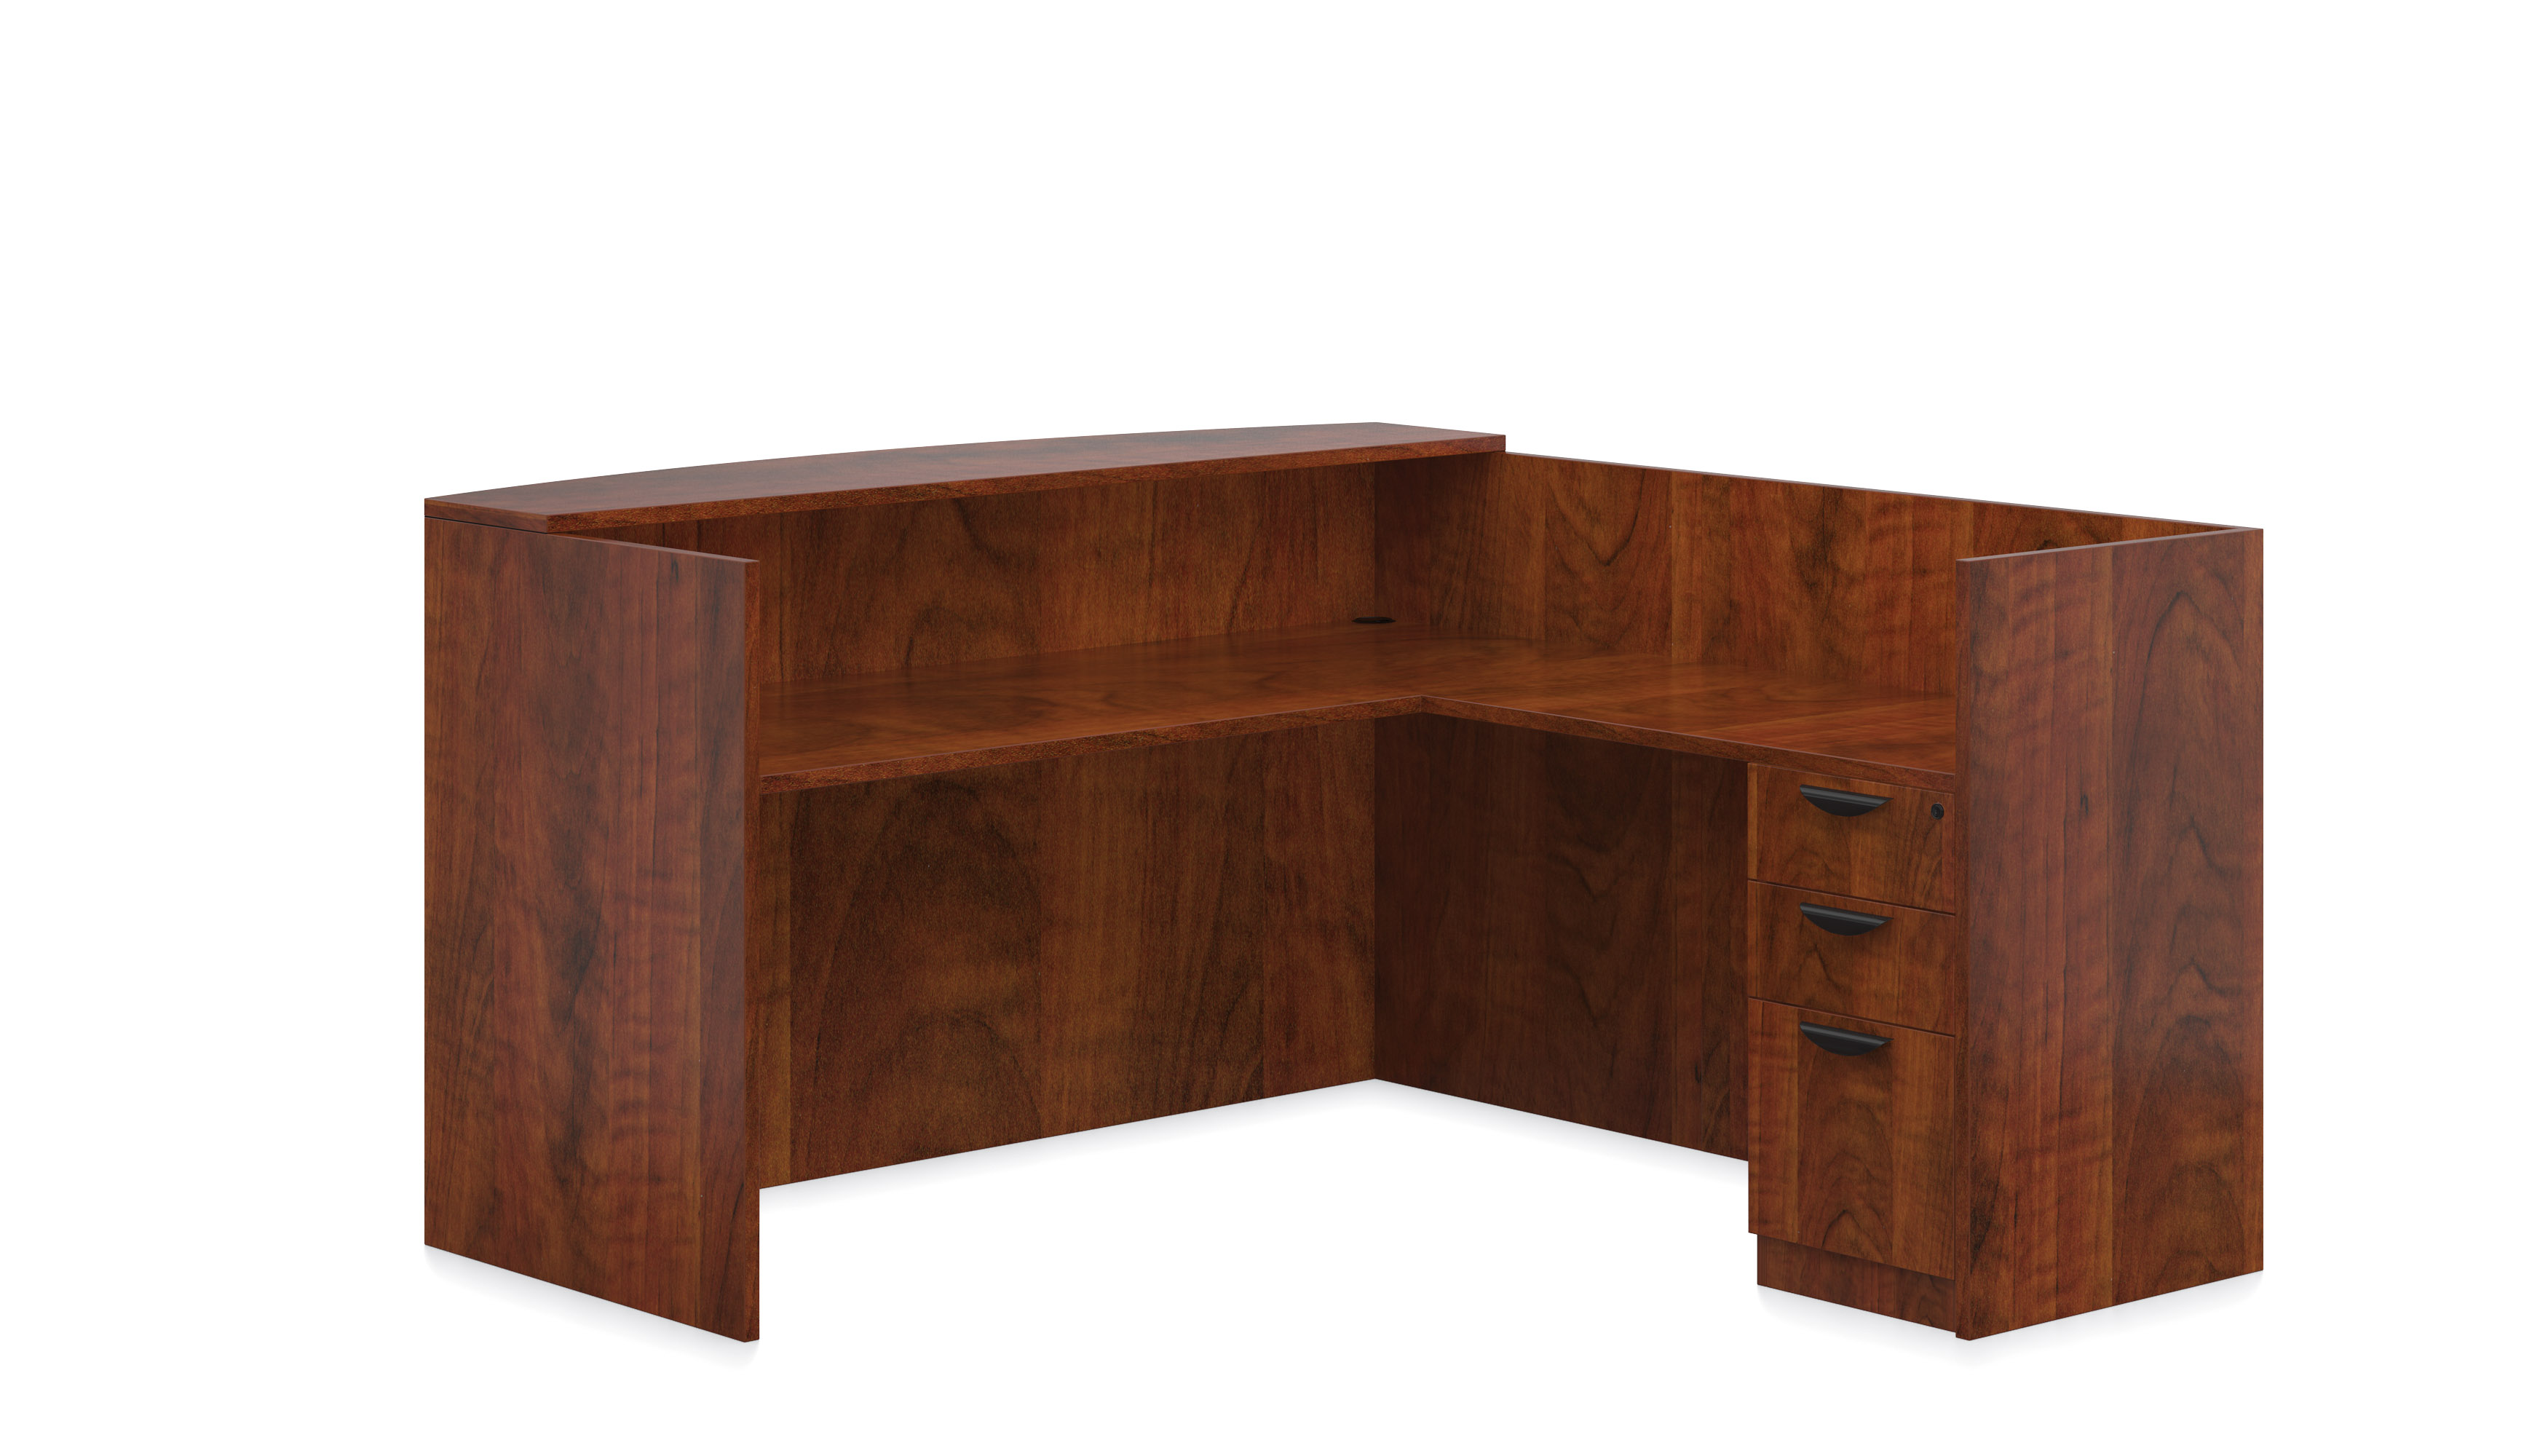 Affordable Lobby Furniture From OTG   Shown In American Dark Cherry  Woodgrain